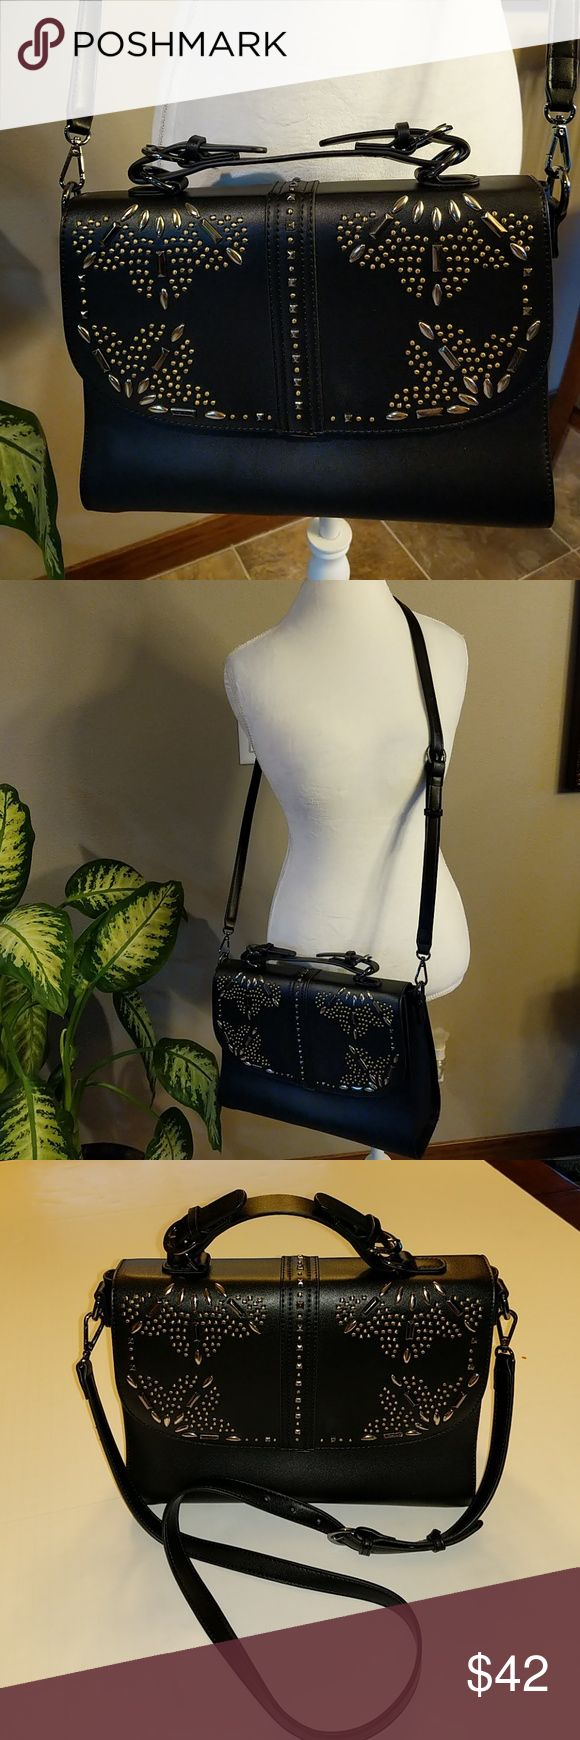 Chelsea28 black crossbody purse New without tags Chelsea 28 crossbody or handled purse. Silver and a darker black Hardware snap closure one zip compartments inside, and one not zip. Back has one zip compartment. All man-made material chelsea 28 Bags Crossbody Bags